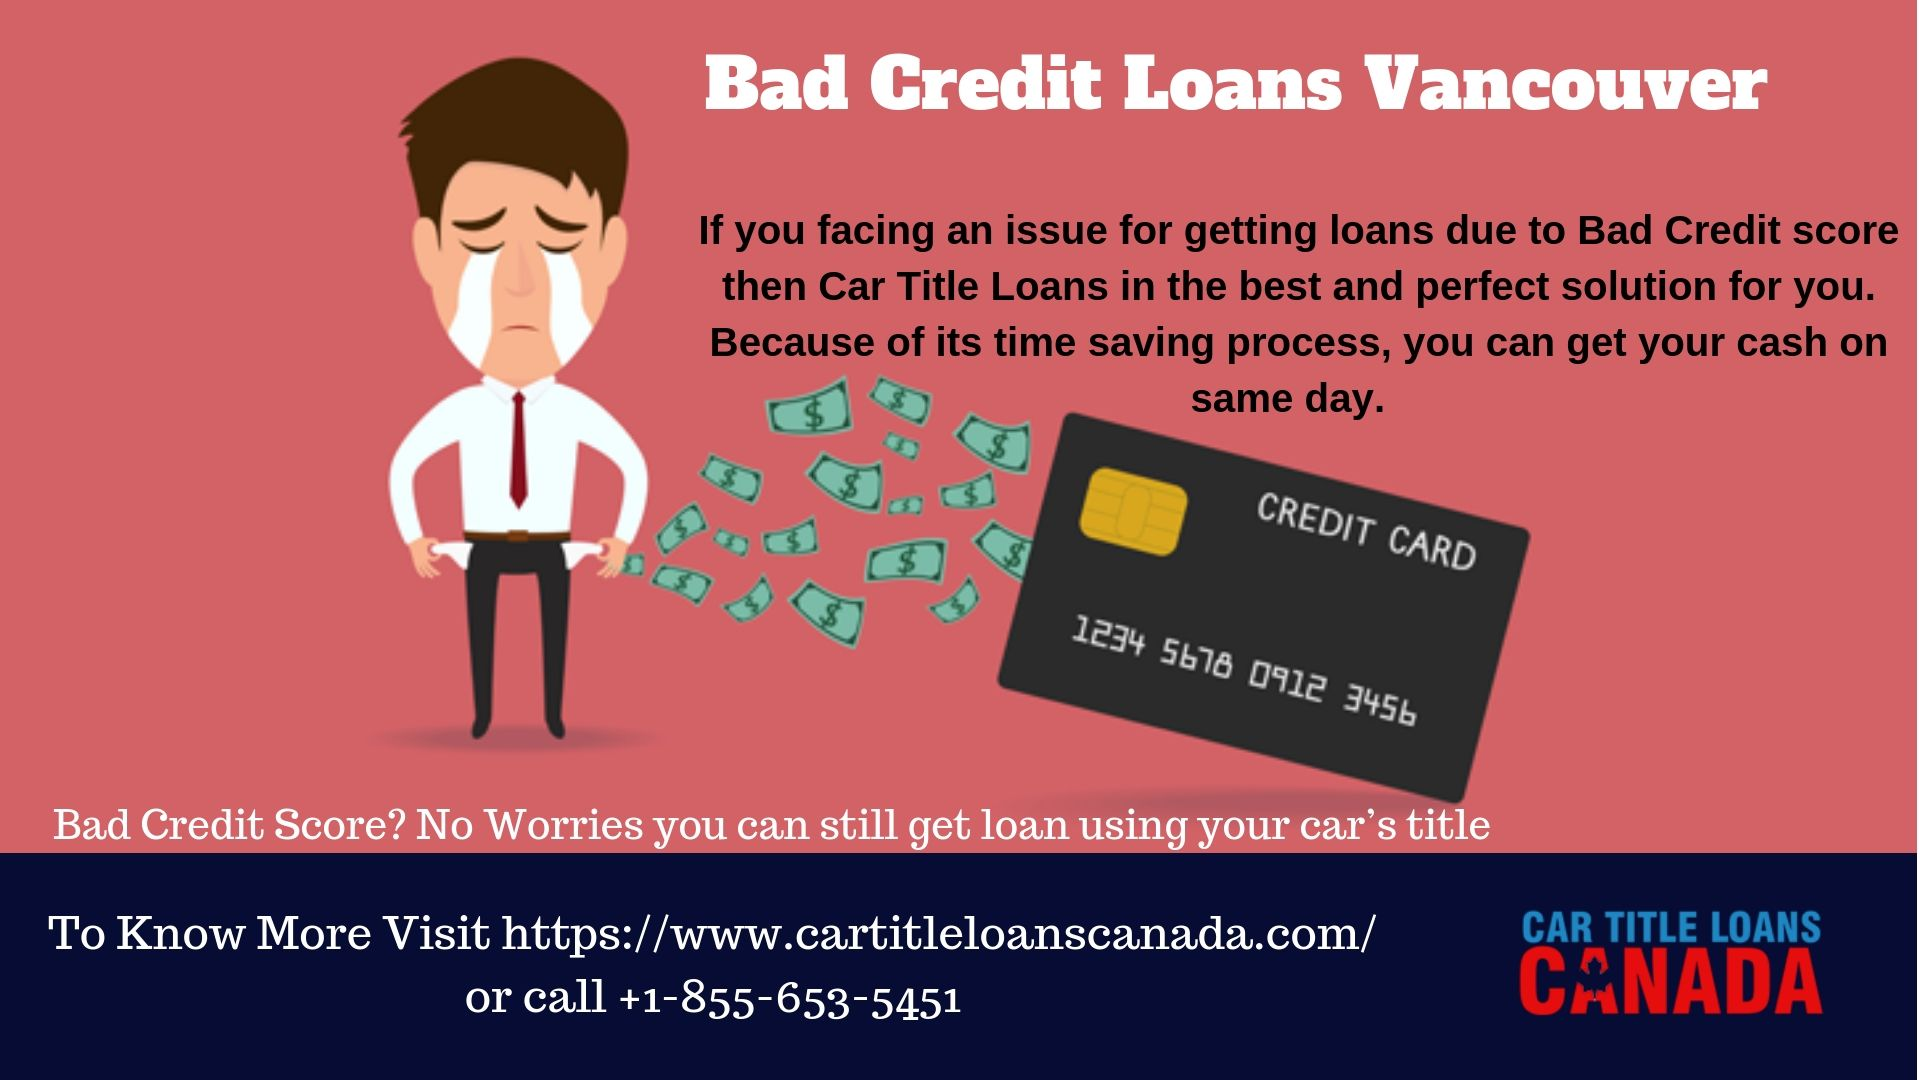 If You Facing An Issue For Getting Loans Due To Bad Credit Score Then Car Title Loans In The Best And Perfect S Car Title Bad Credit Score Loans For Bad